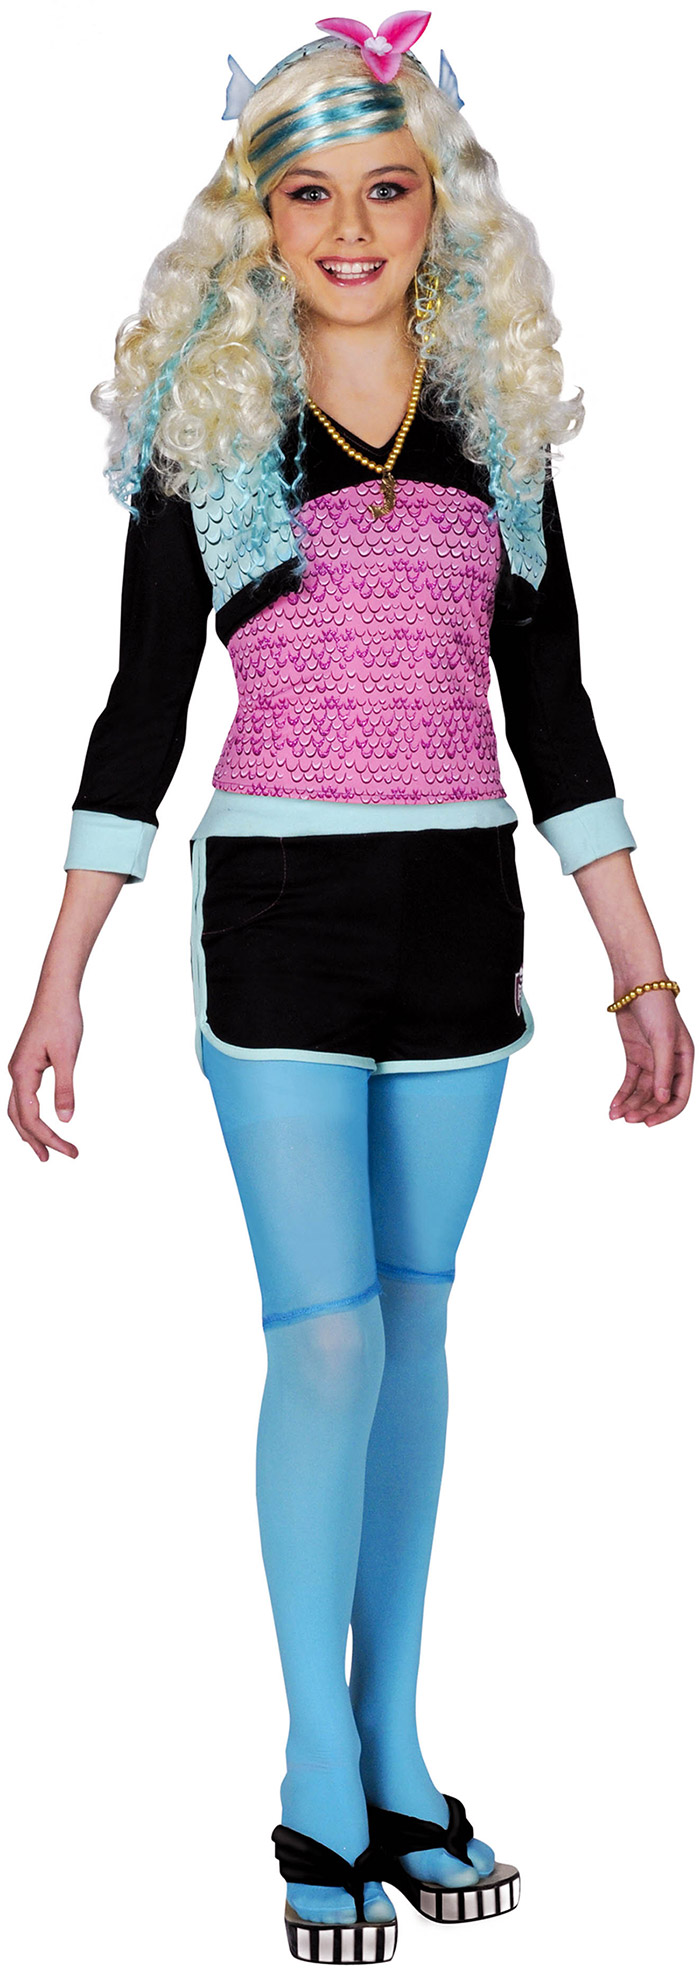 Monster high costumes parties costume - Costume halloween fille ...